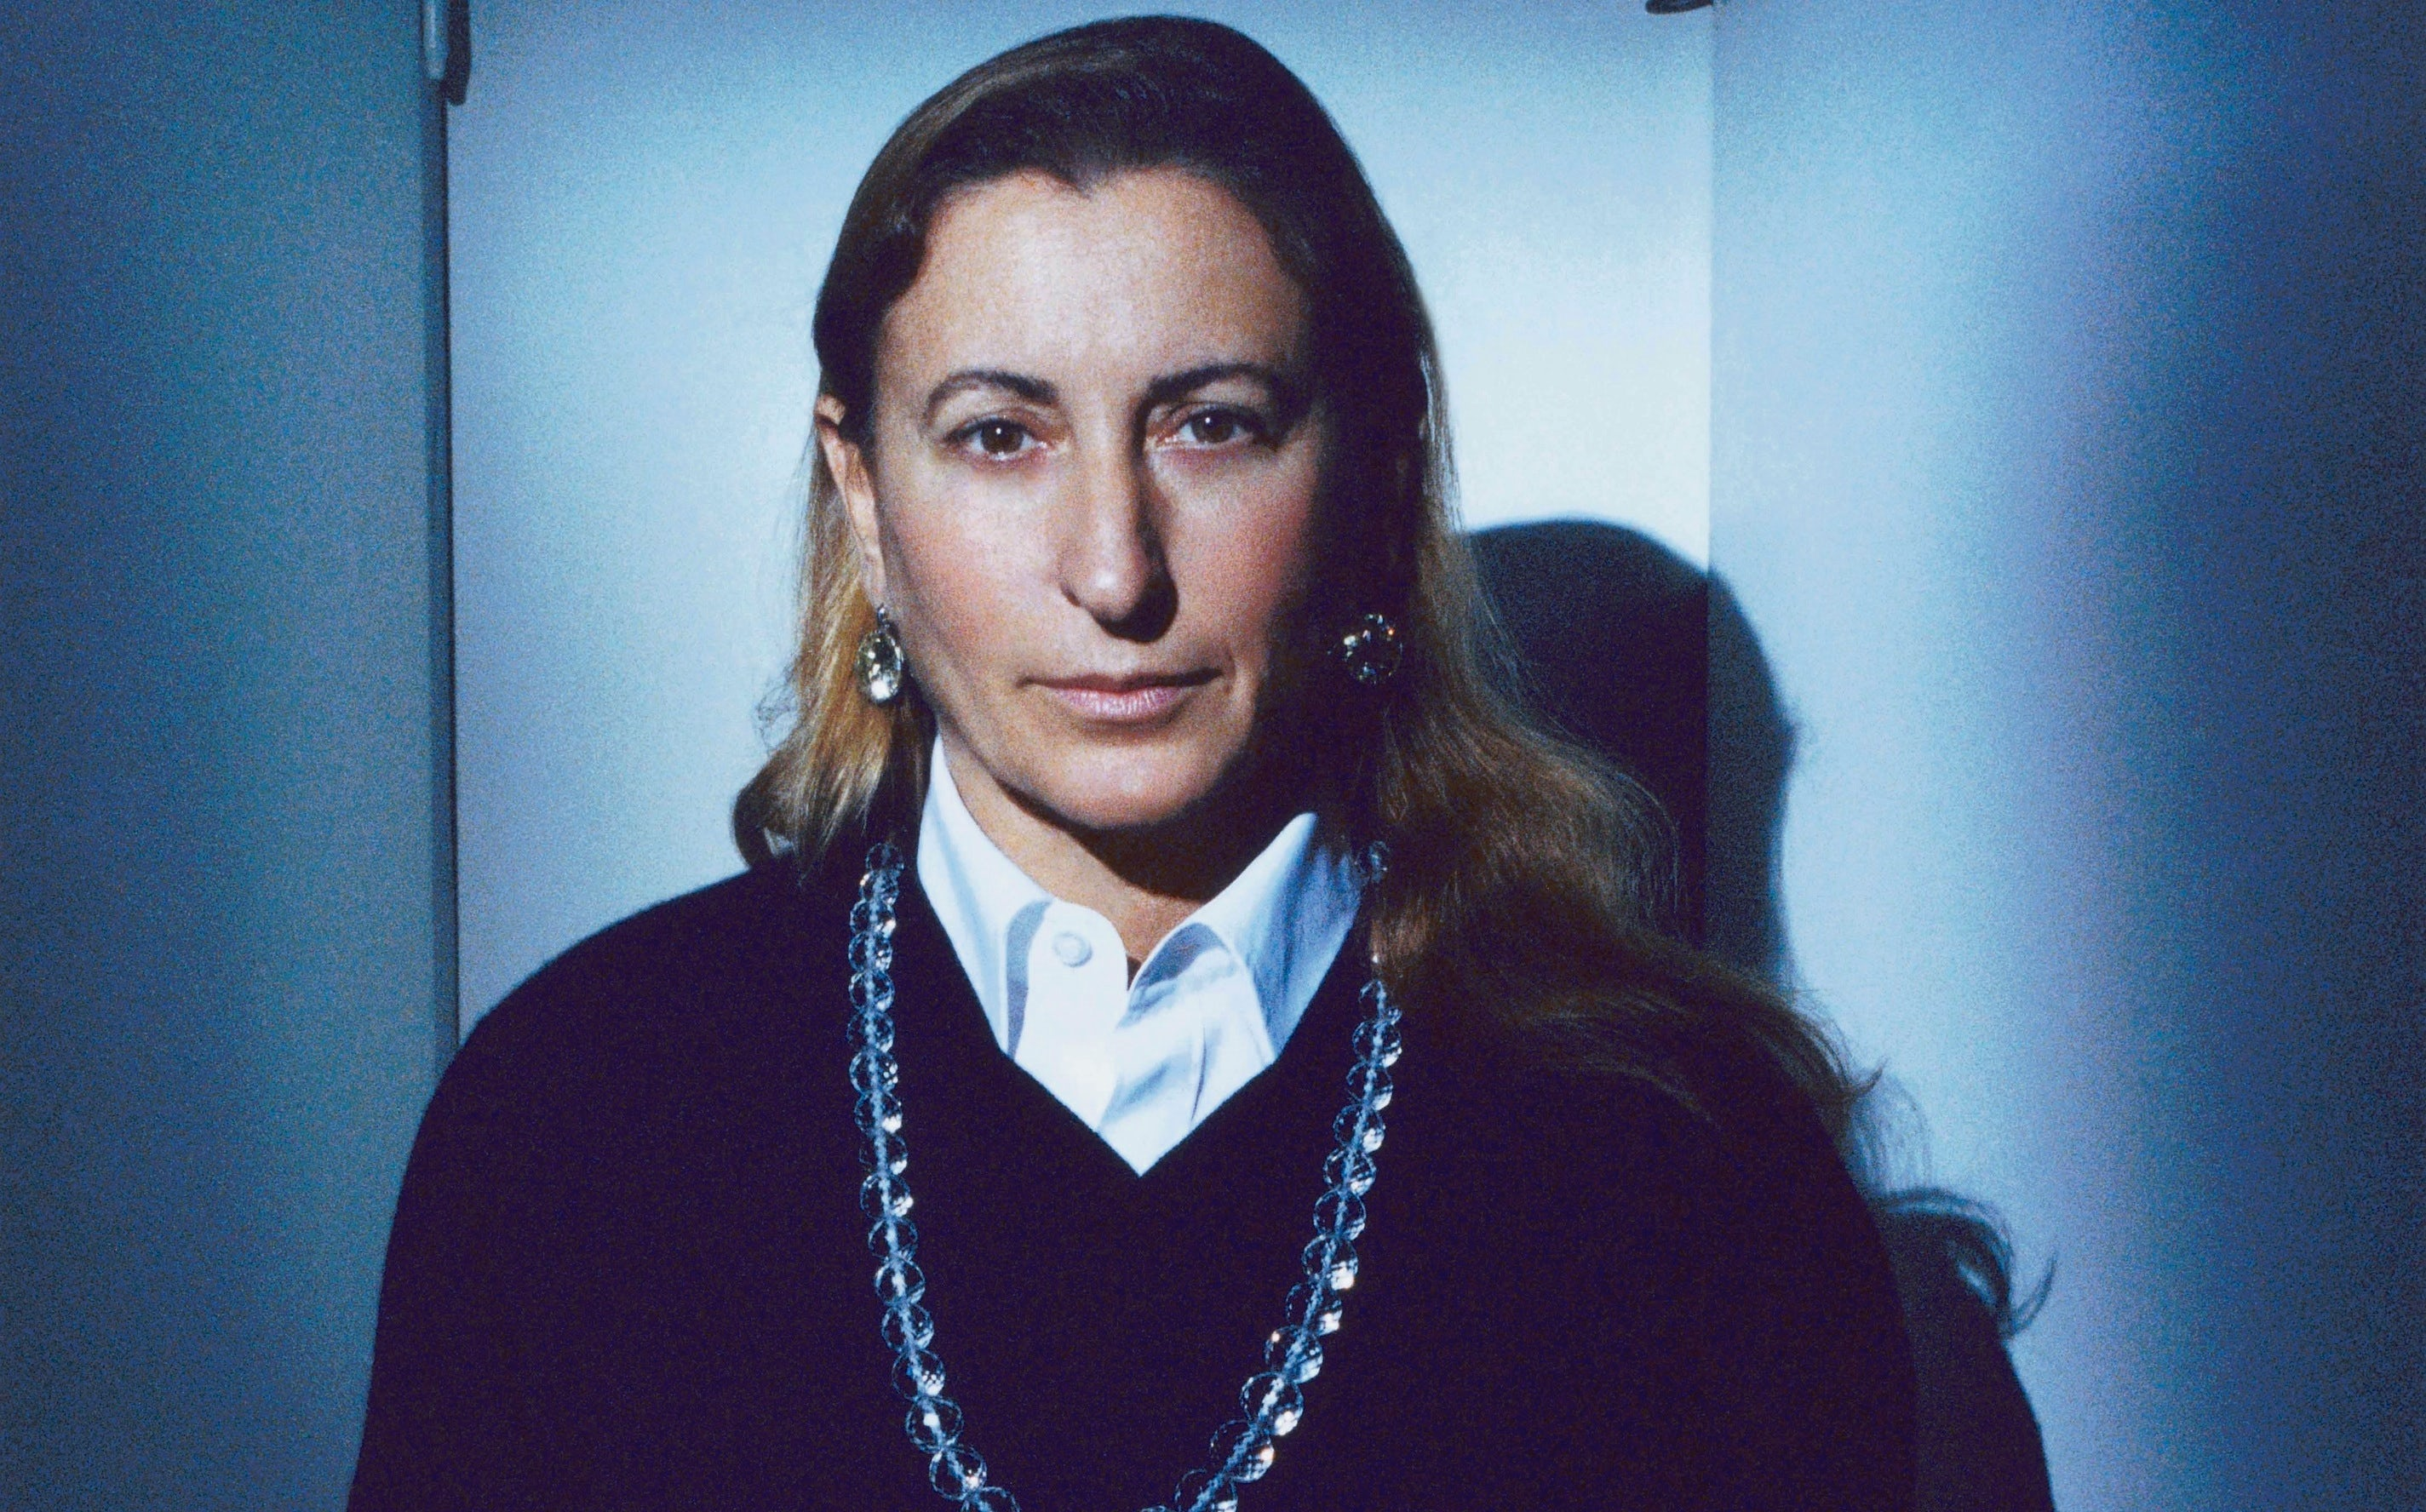 Top Car Designs >> Miuccia Prada | BoF 500 | The People Shaping the Global Fashion Industry